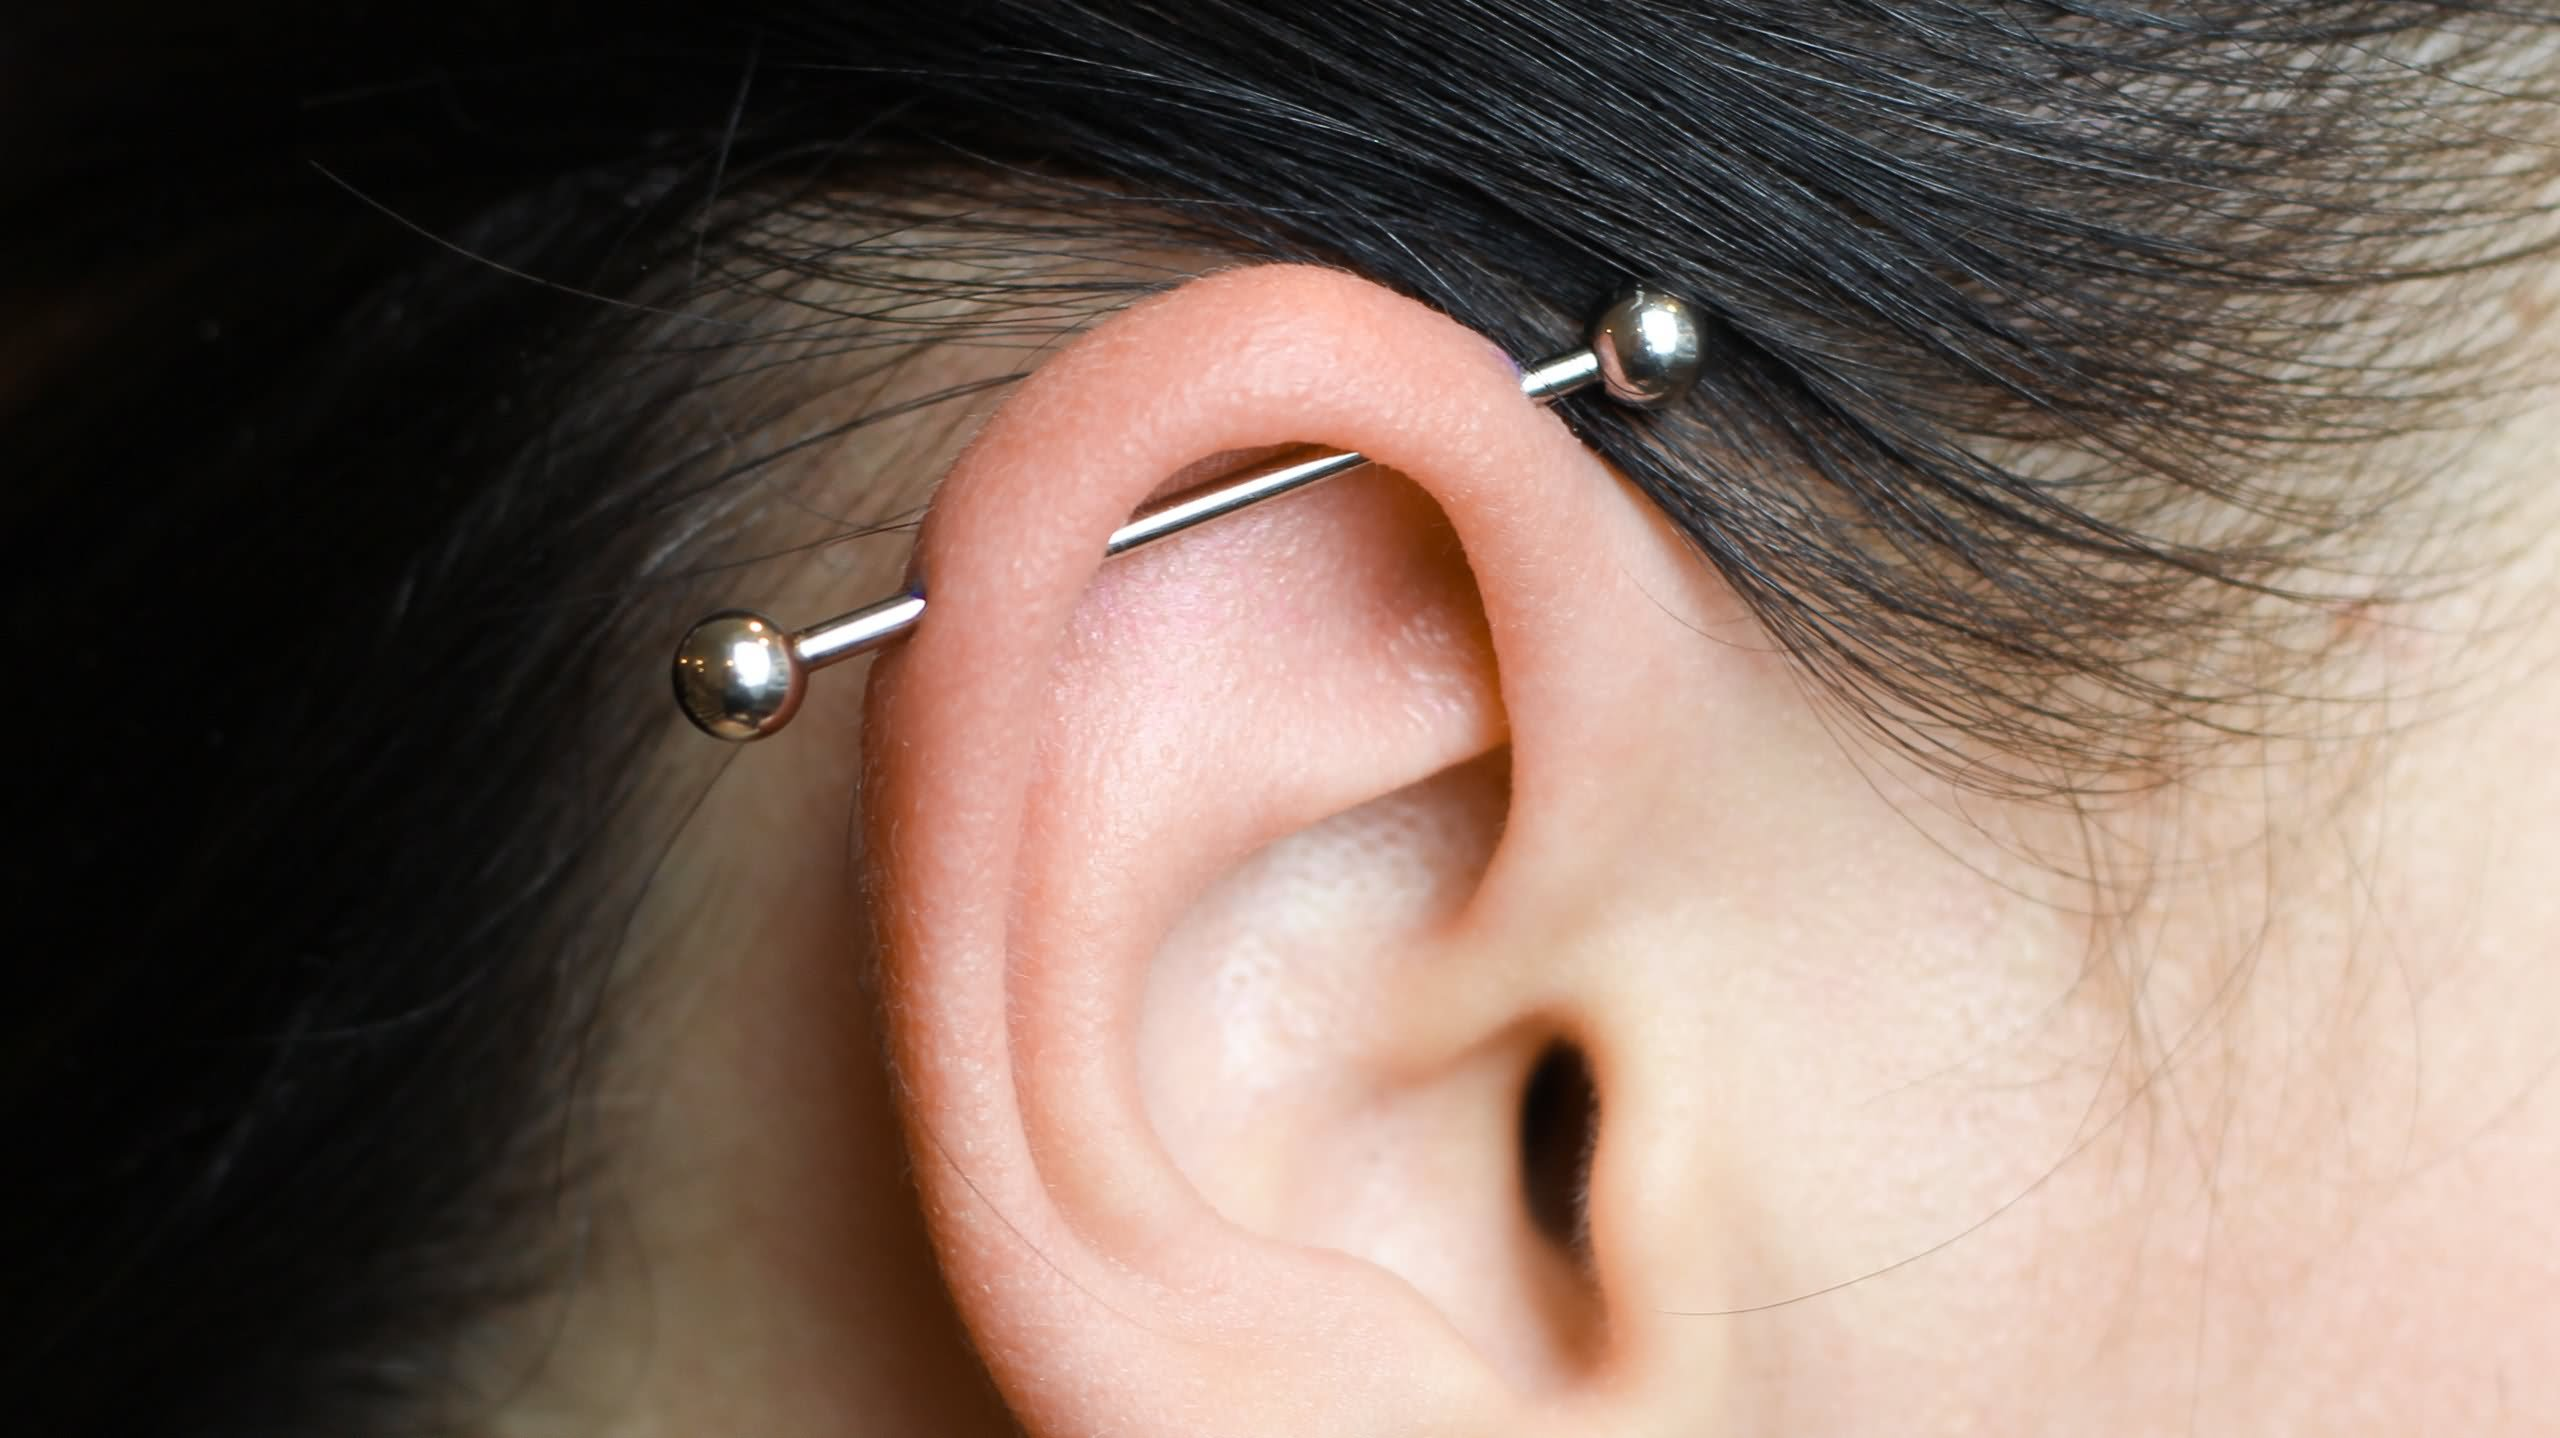 48 Industrial Piercing Ideas For Girls